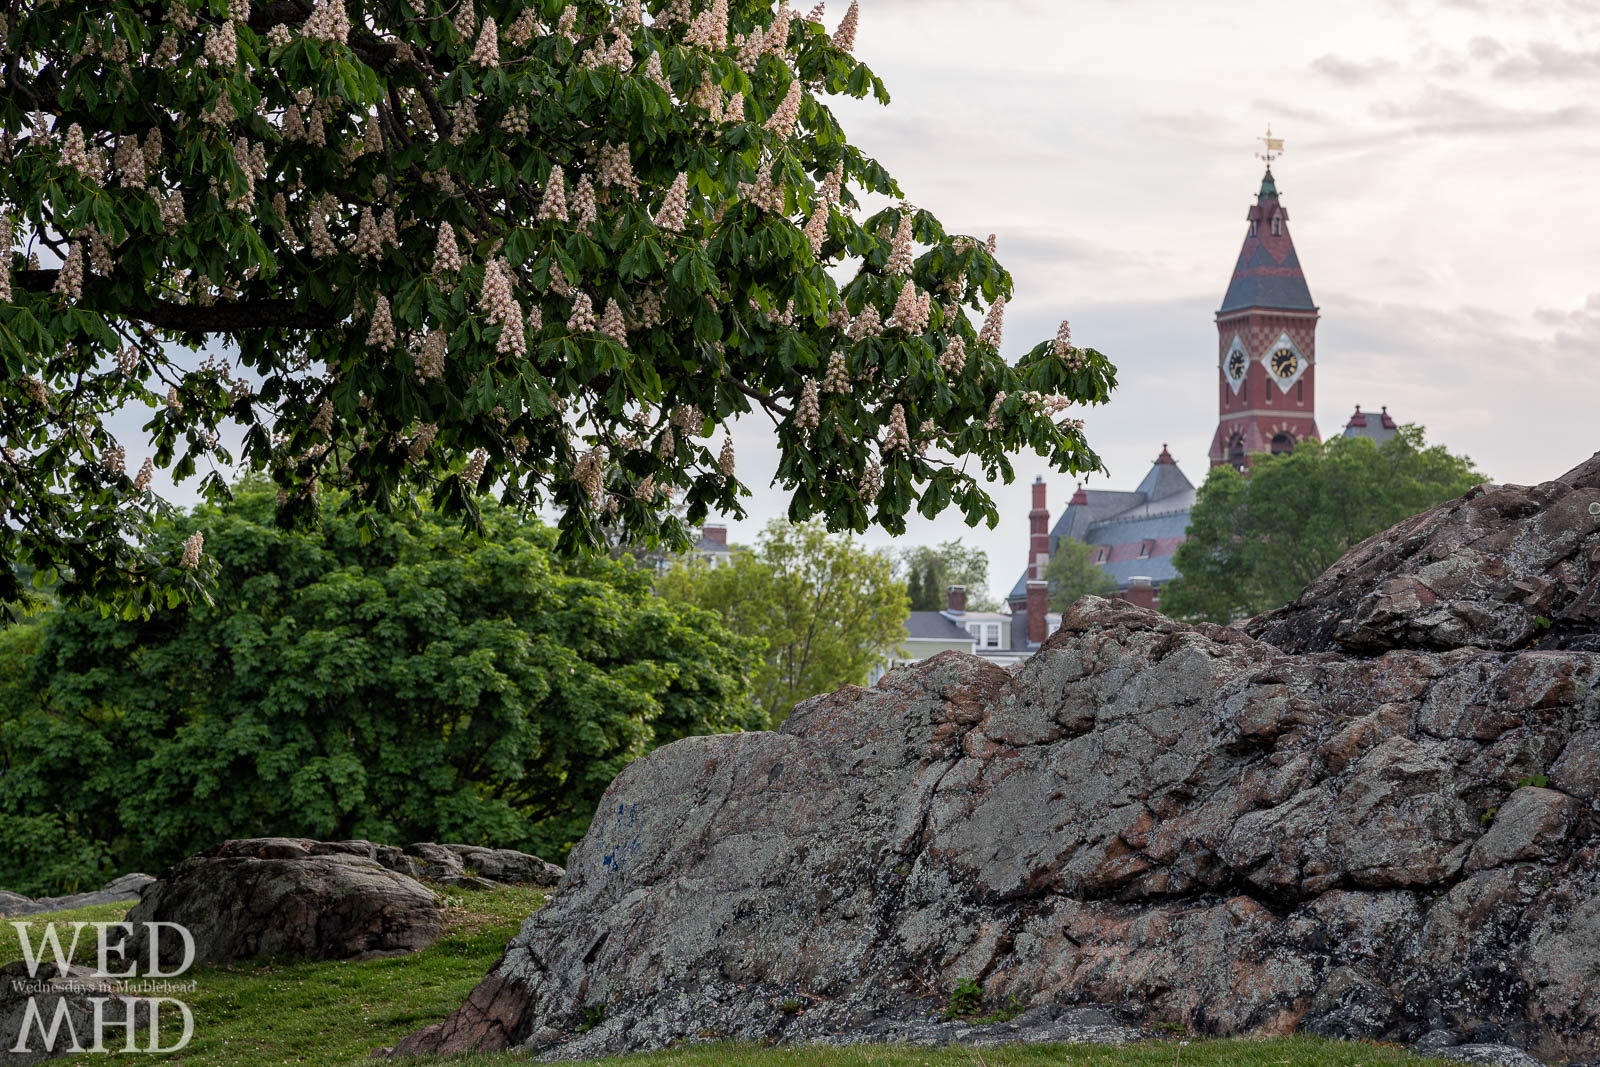 The chestnut tree at Crocker Park reaches peak blossom on a late May evening in Marblehead